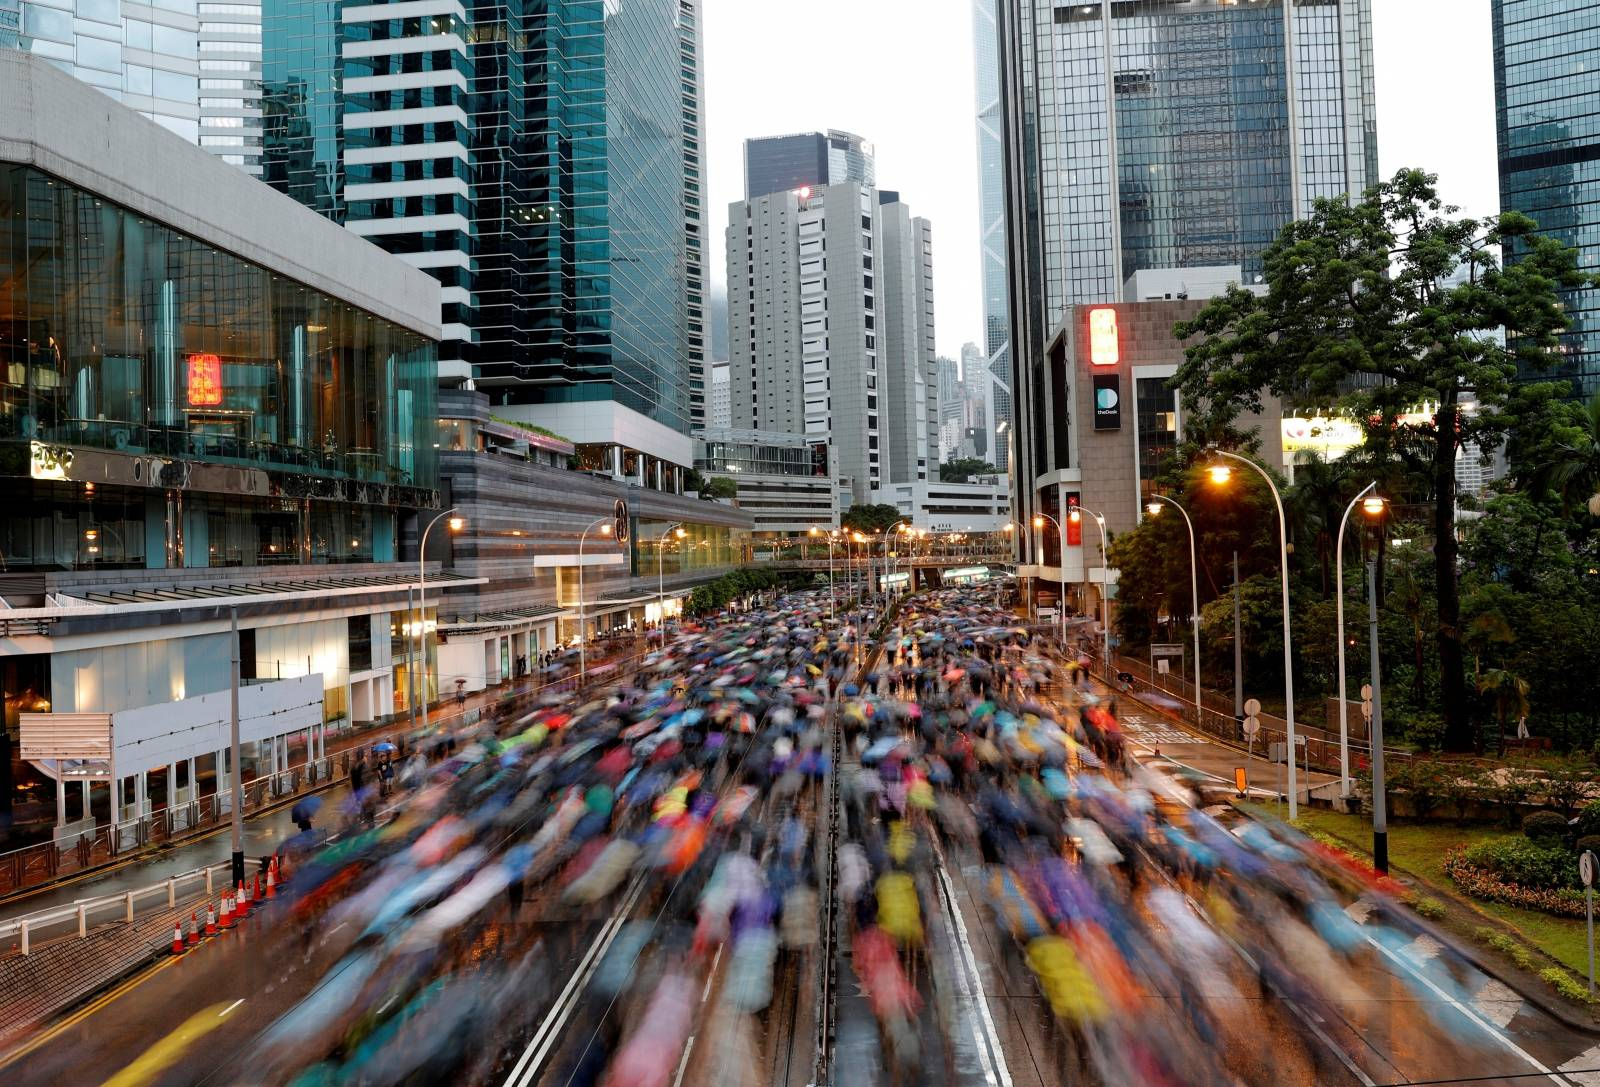 People march during a rally to demand democracy and political reforms in Hong Kong